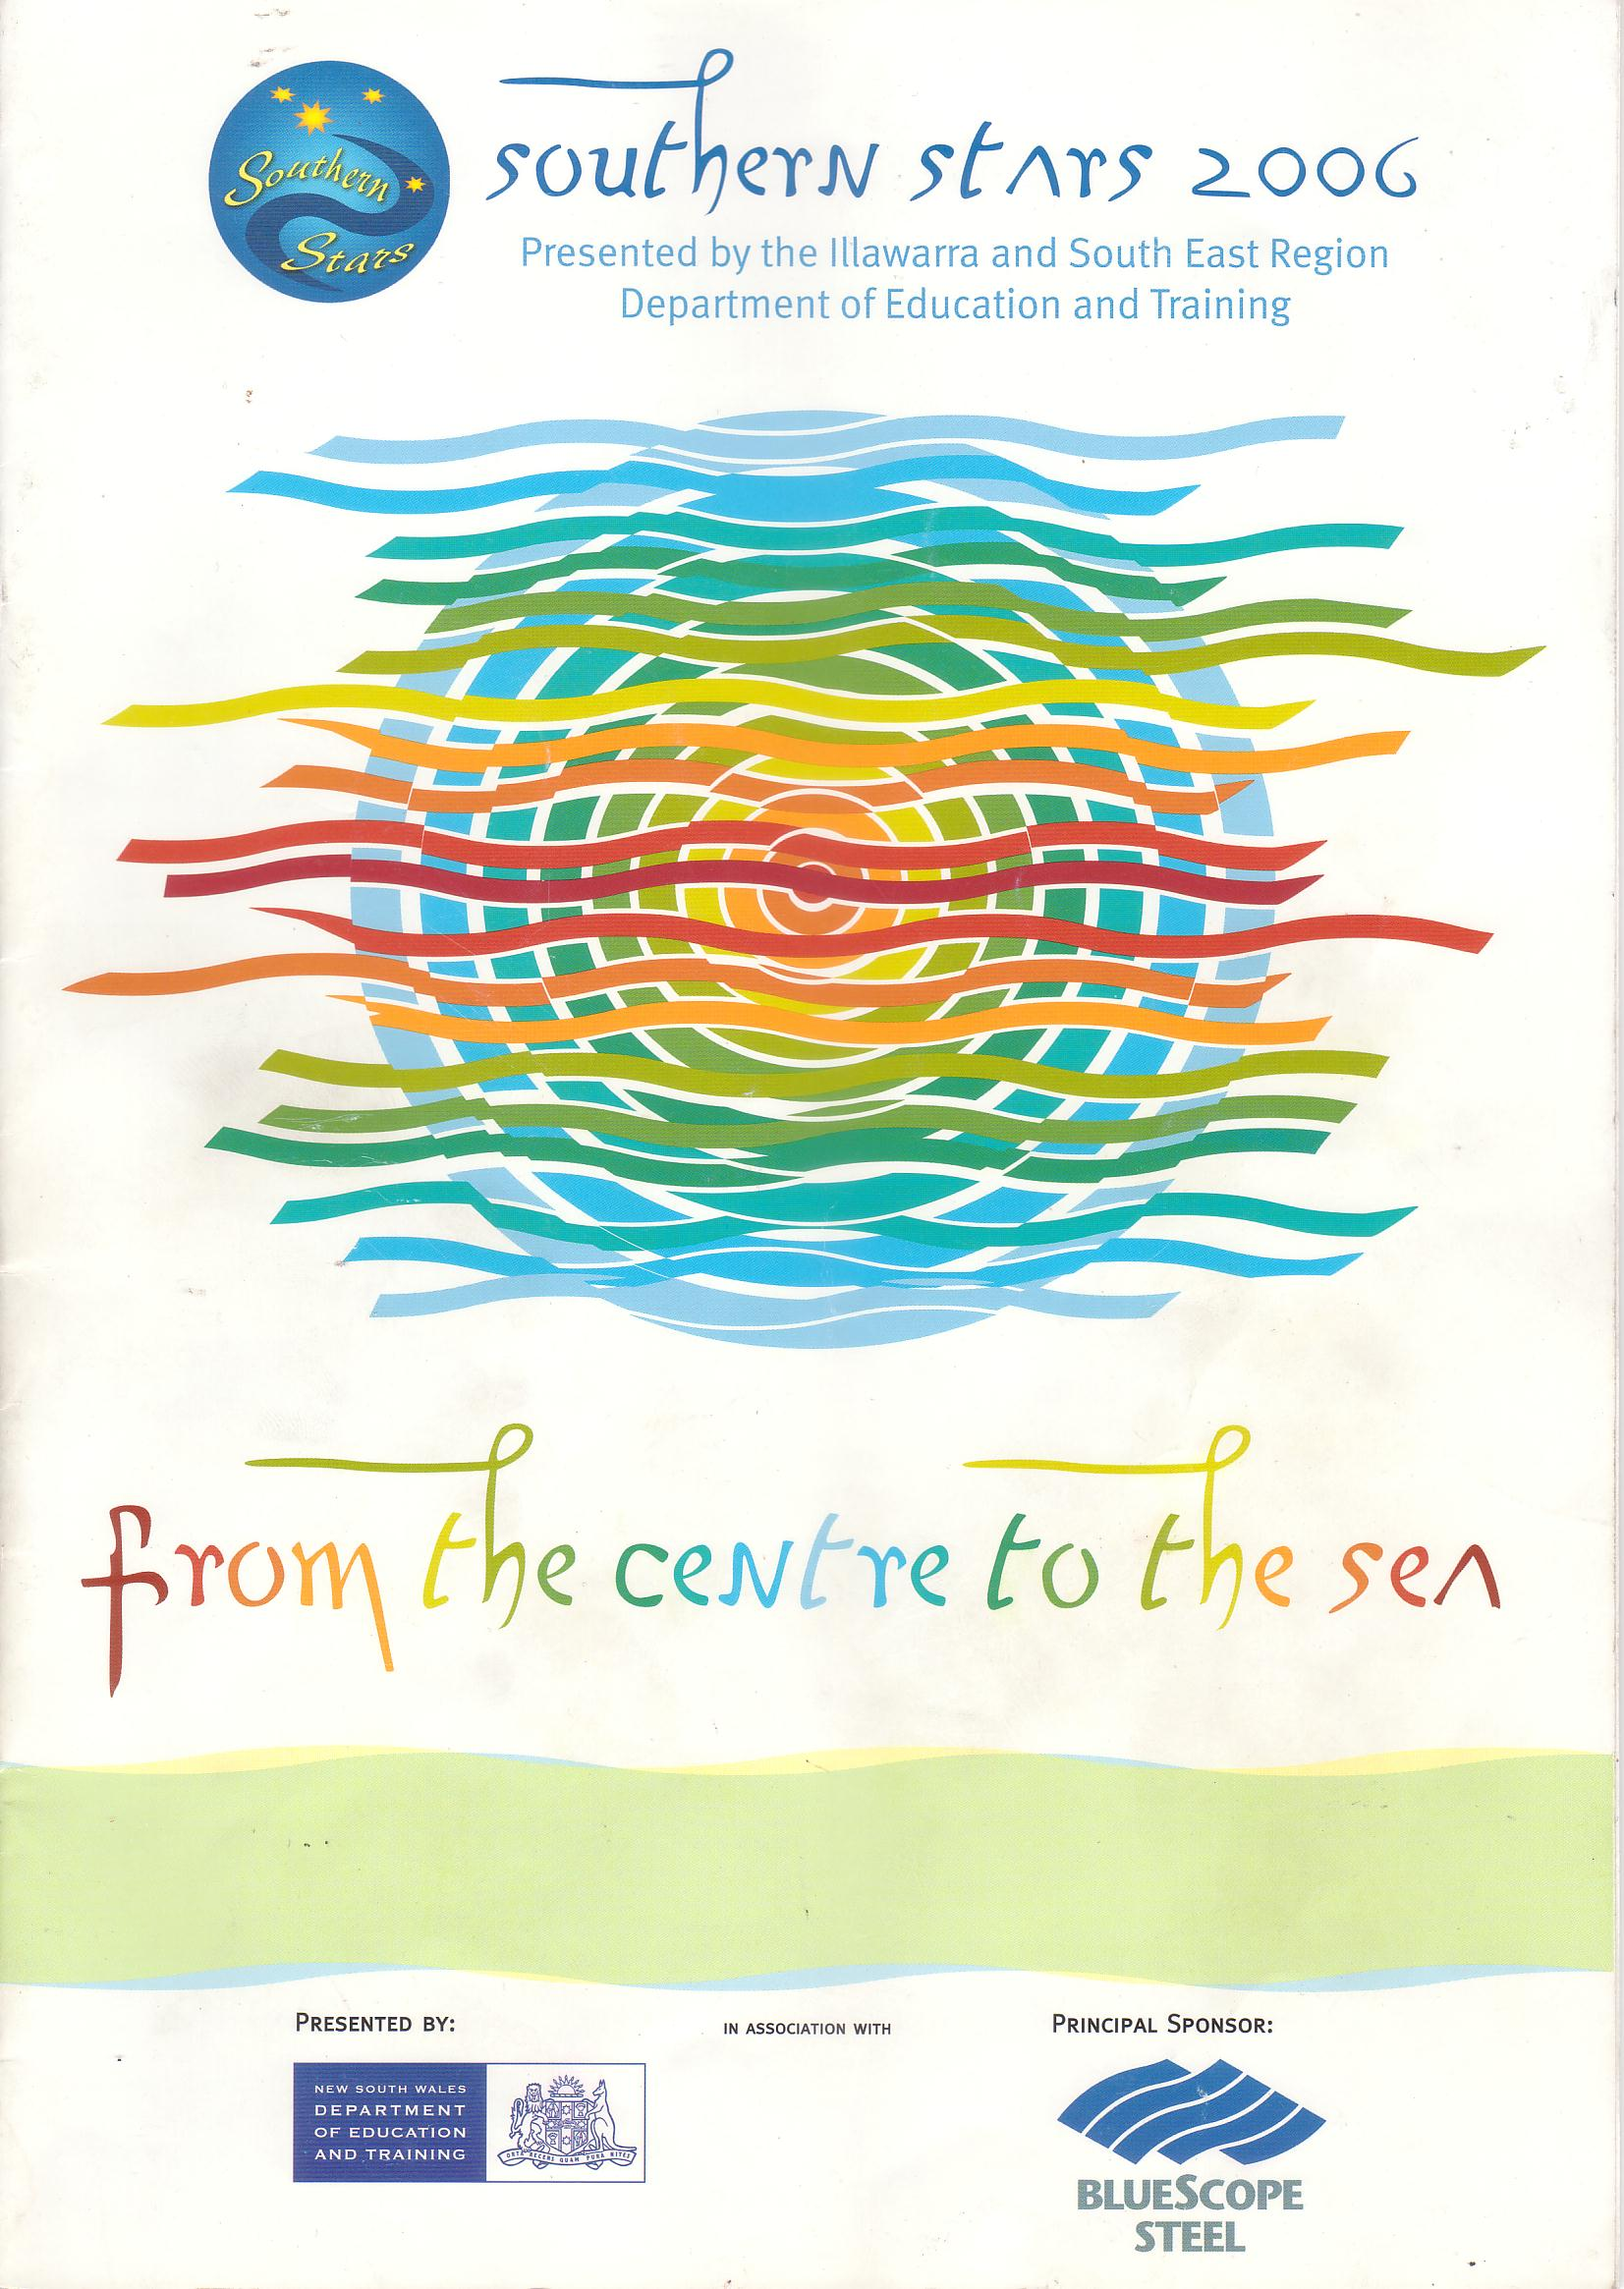 2006 From the Centre to the Sea poster